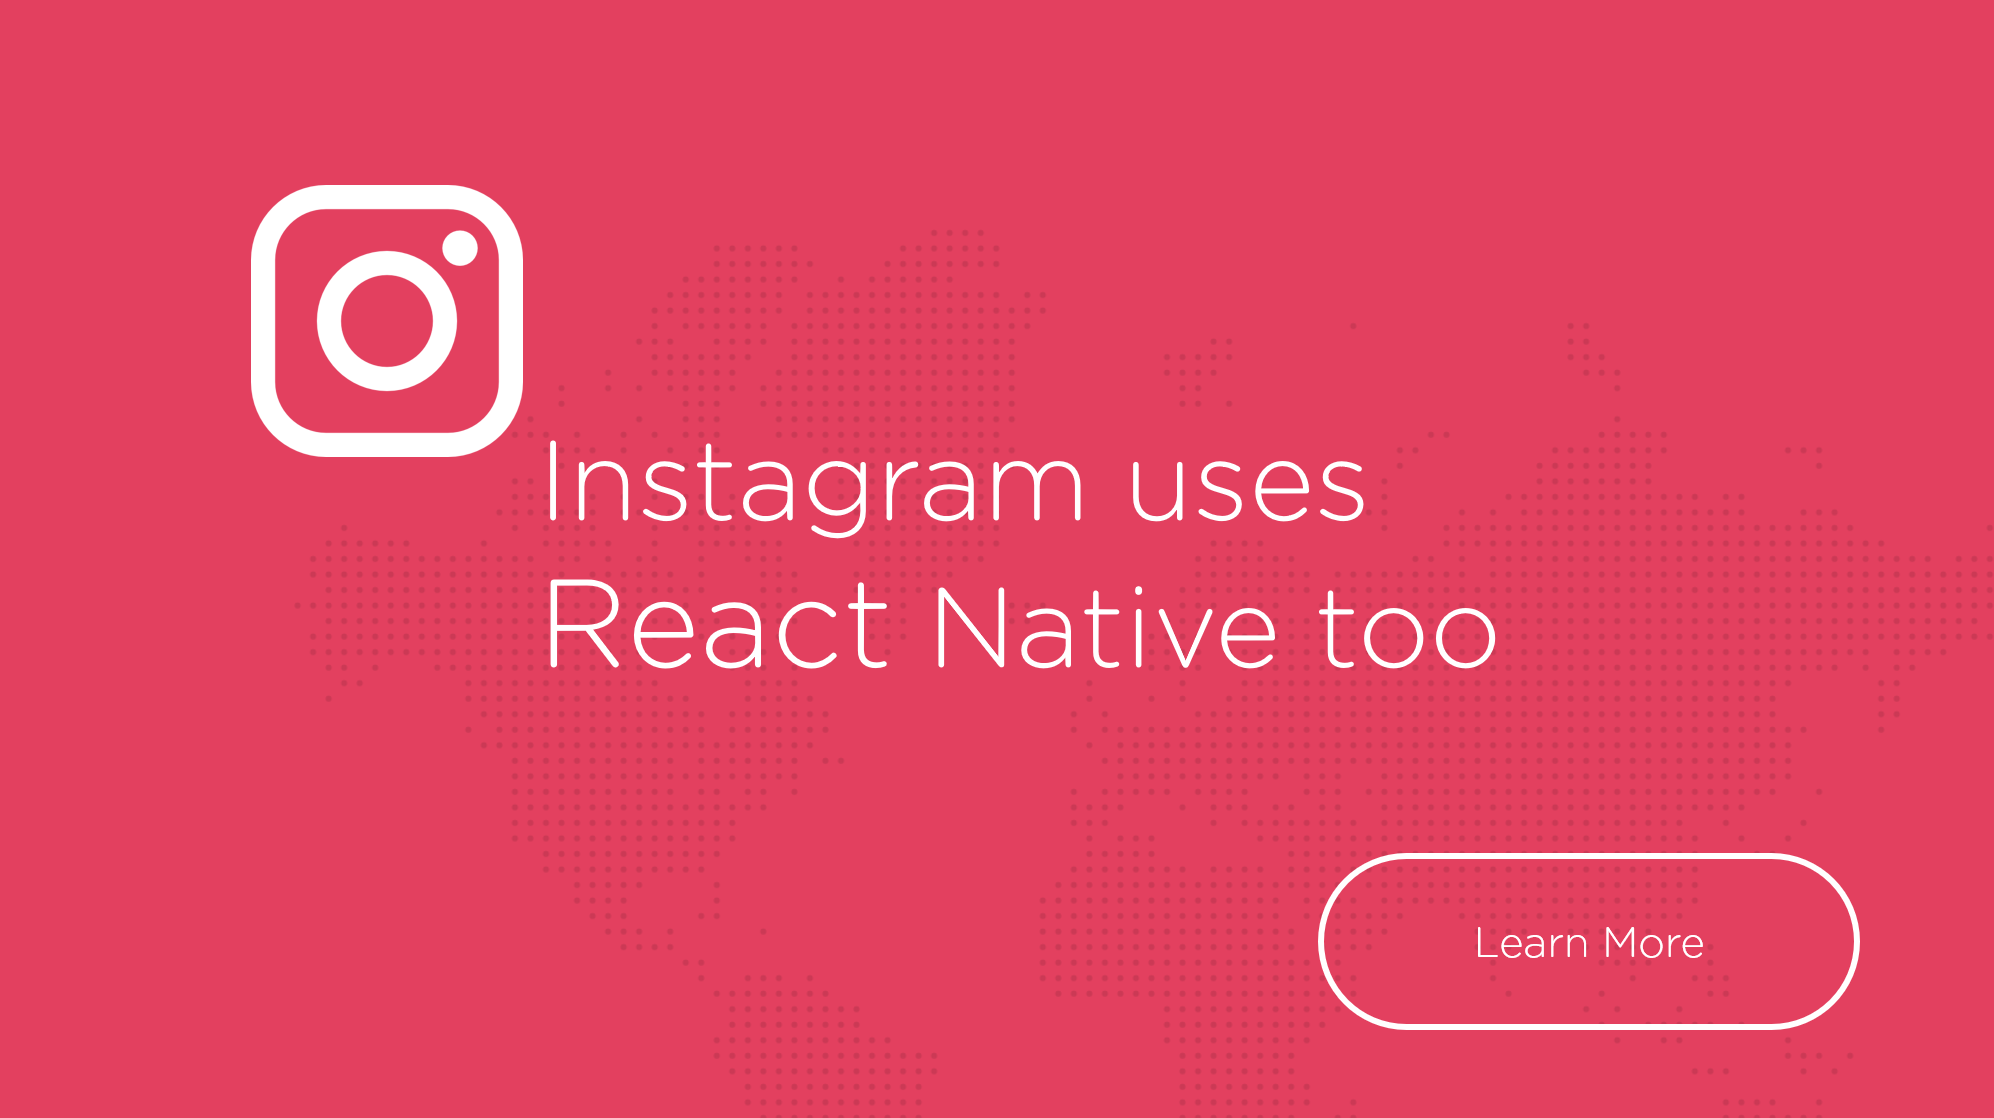 Instagram users React Native too